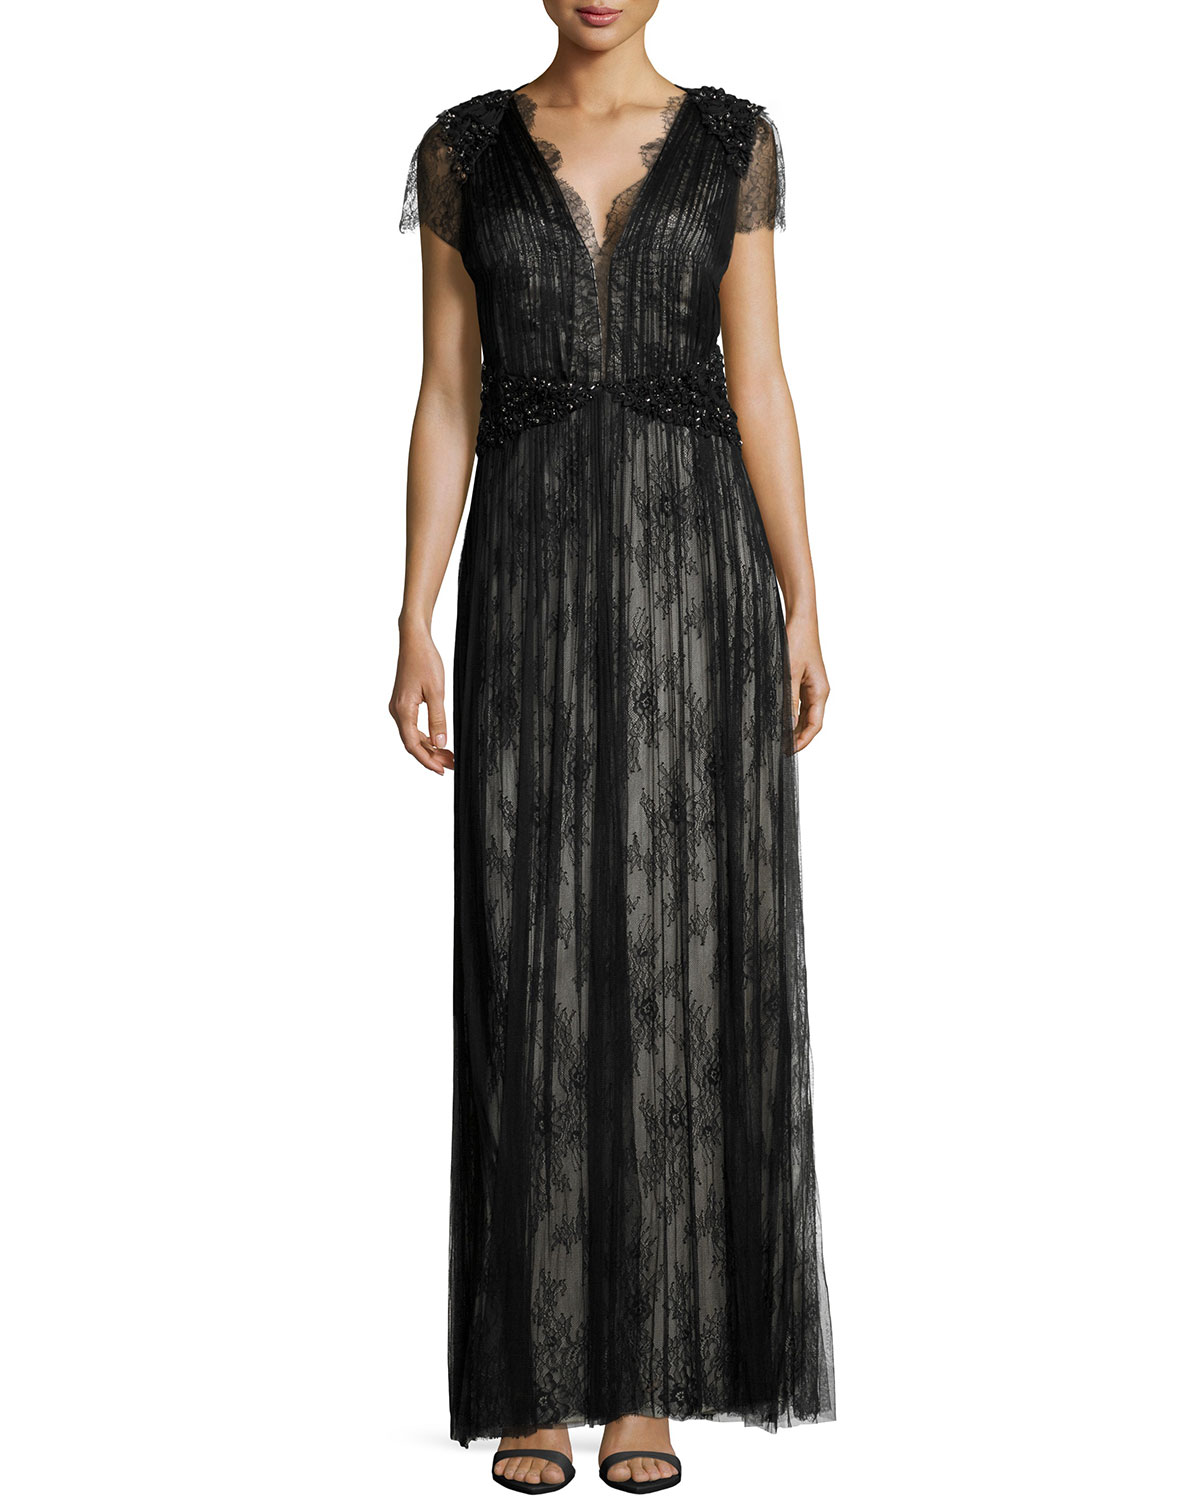 Short-Sleeve Lace Gown, Black/Champagne